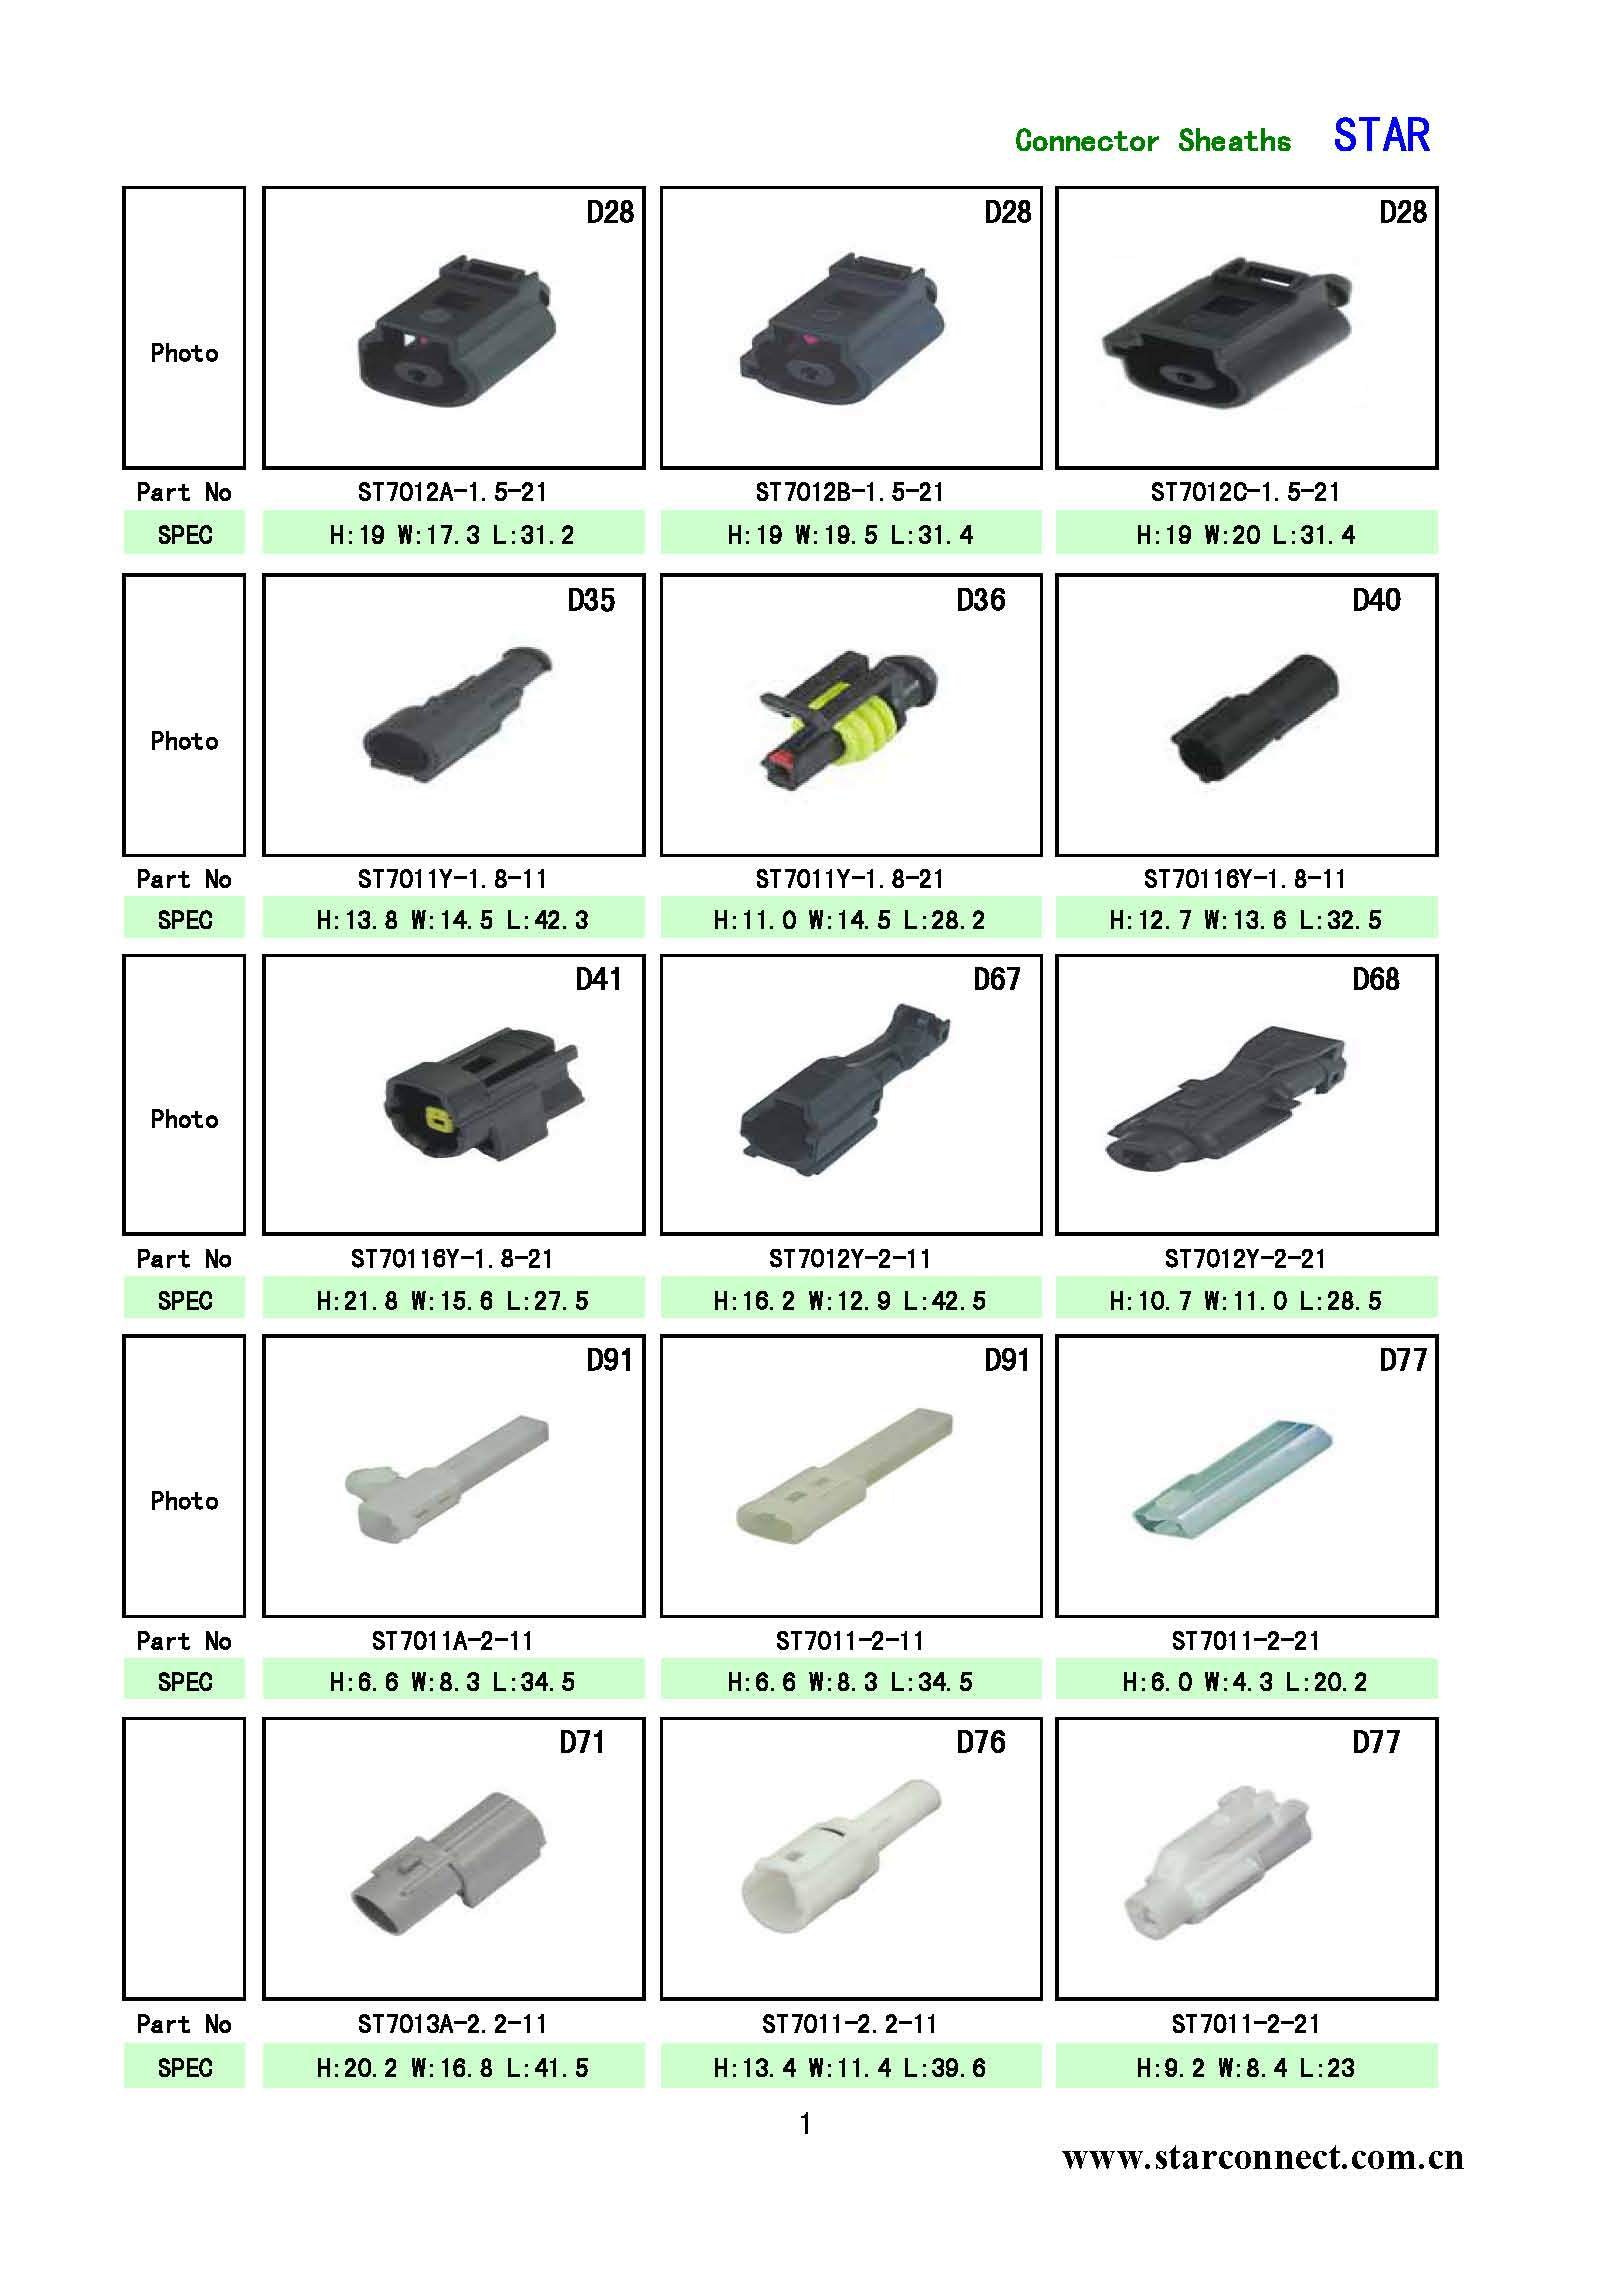 Oem Delphi 10 Pin Auto Wiring Harness Connector Pins Connectors If You Cant Find The Exact Product Need In Picturesplease Dont Go Awayjust Contact Me Freely Or Send Your Sample And Drawing To Us